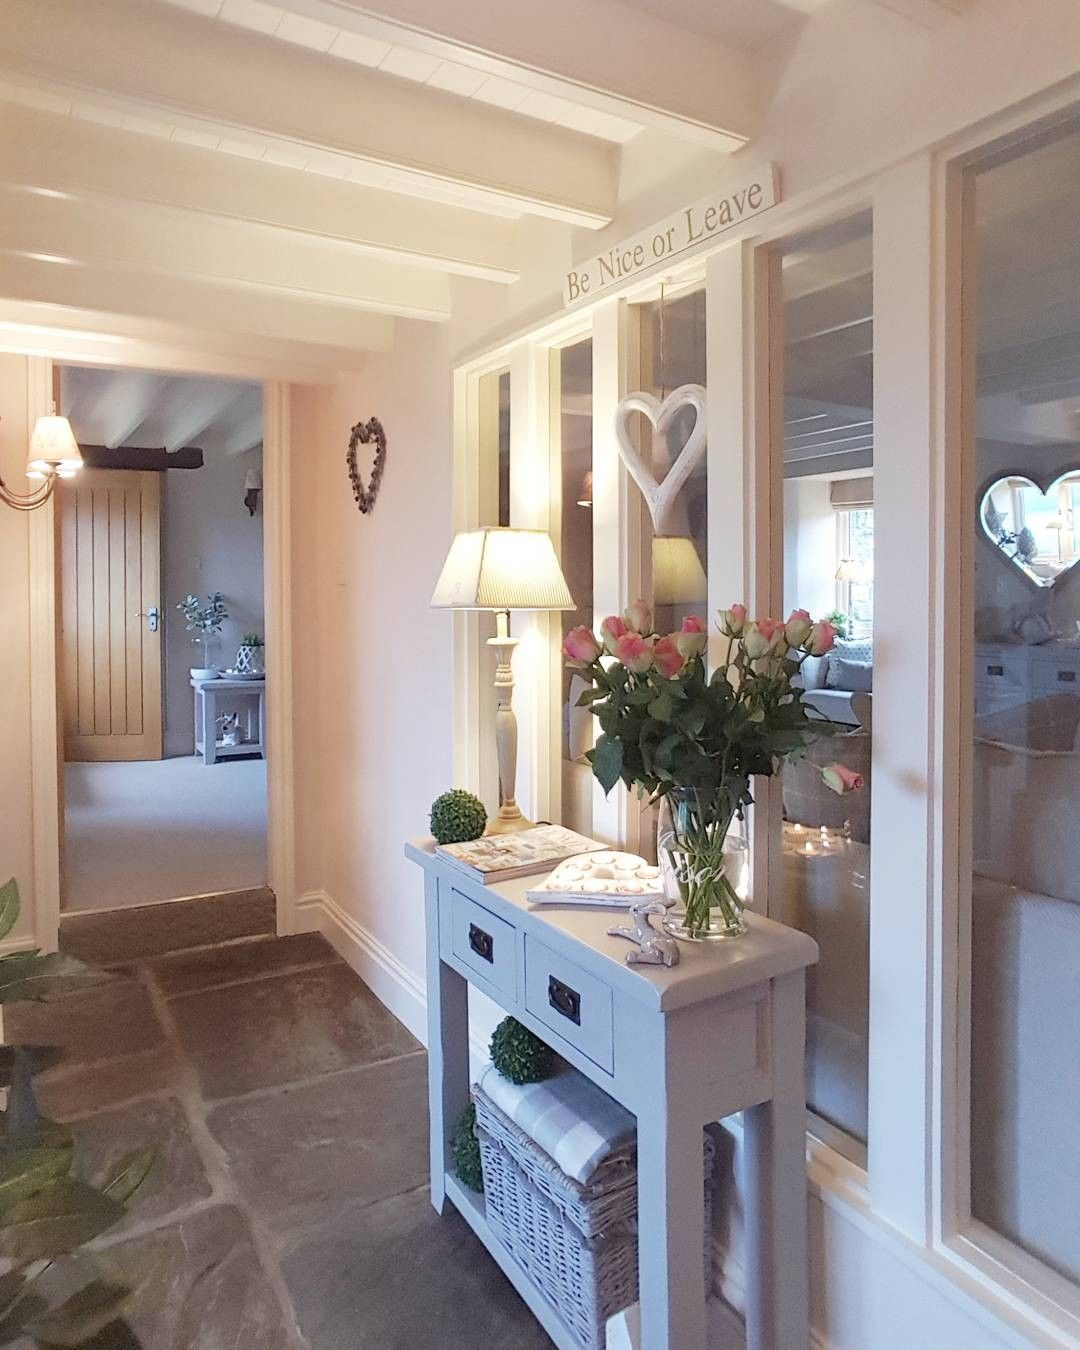 Grey console in the hallway country styling to for Country hallway ideas